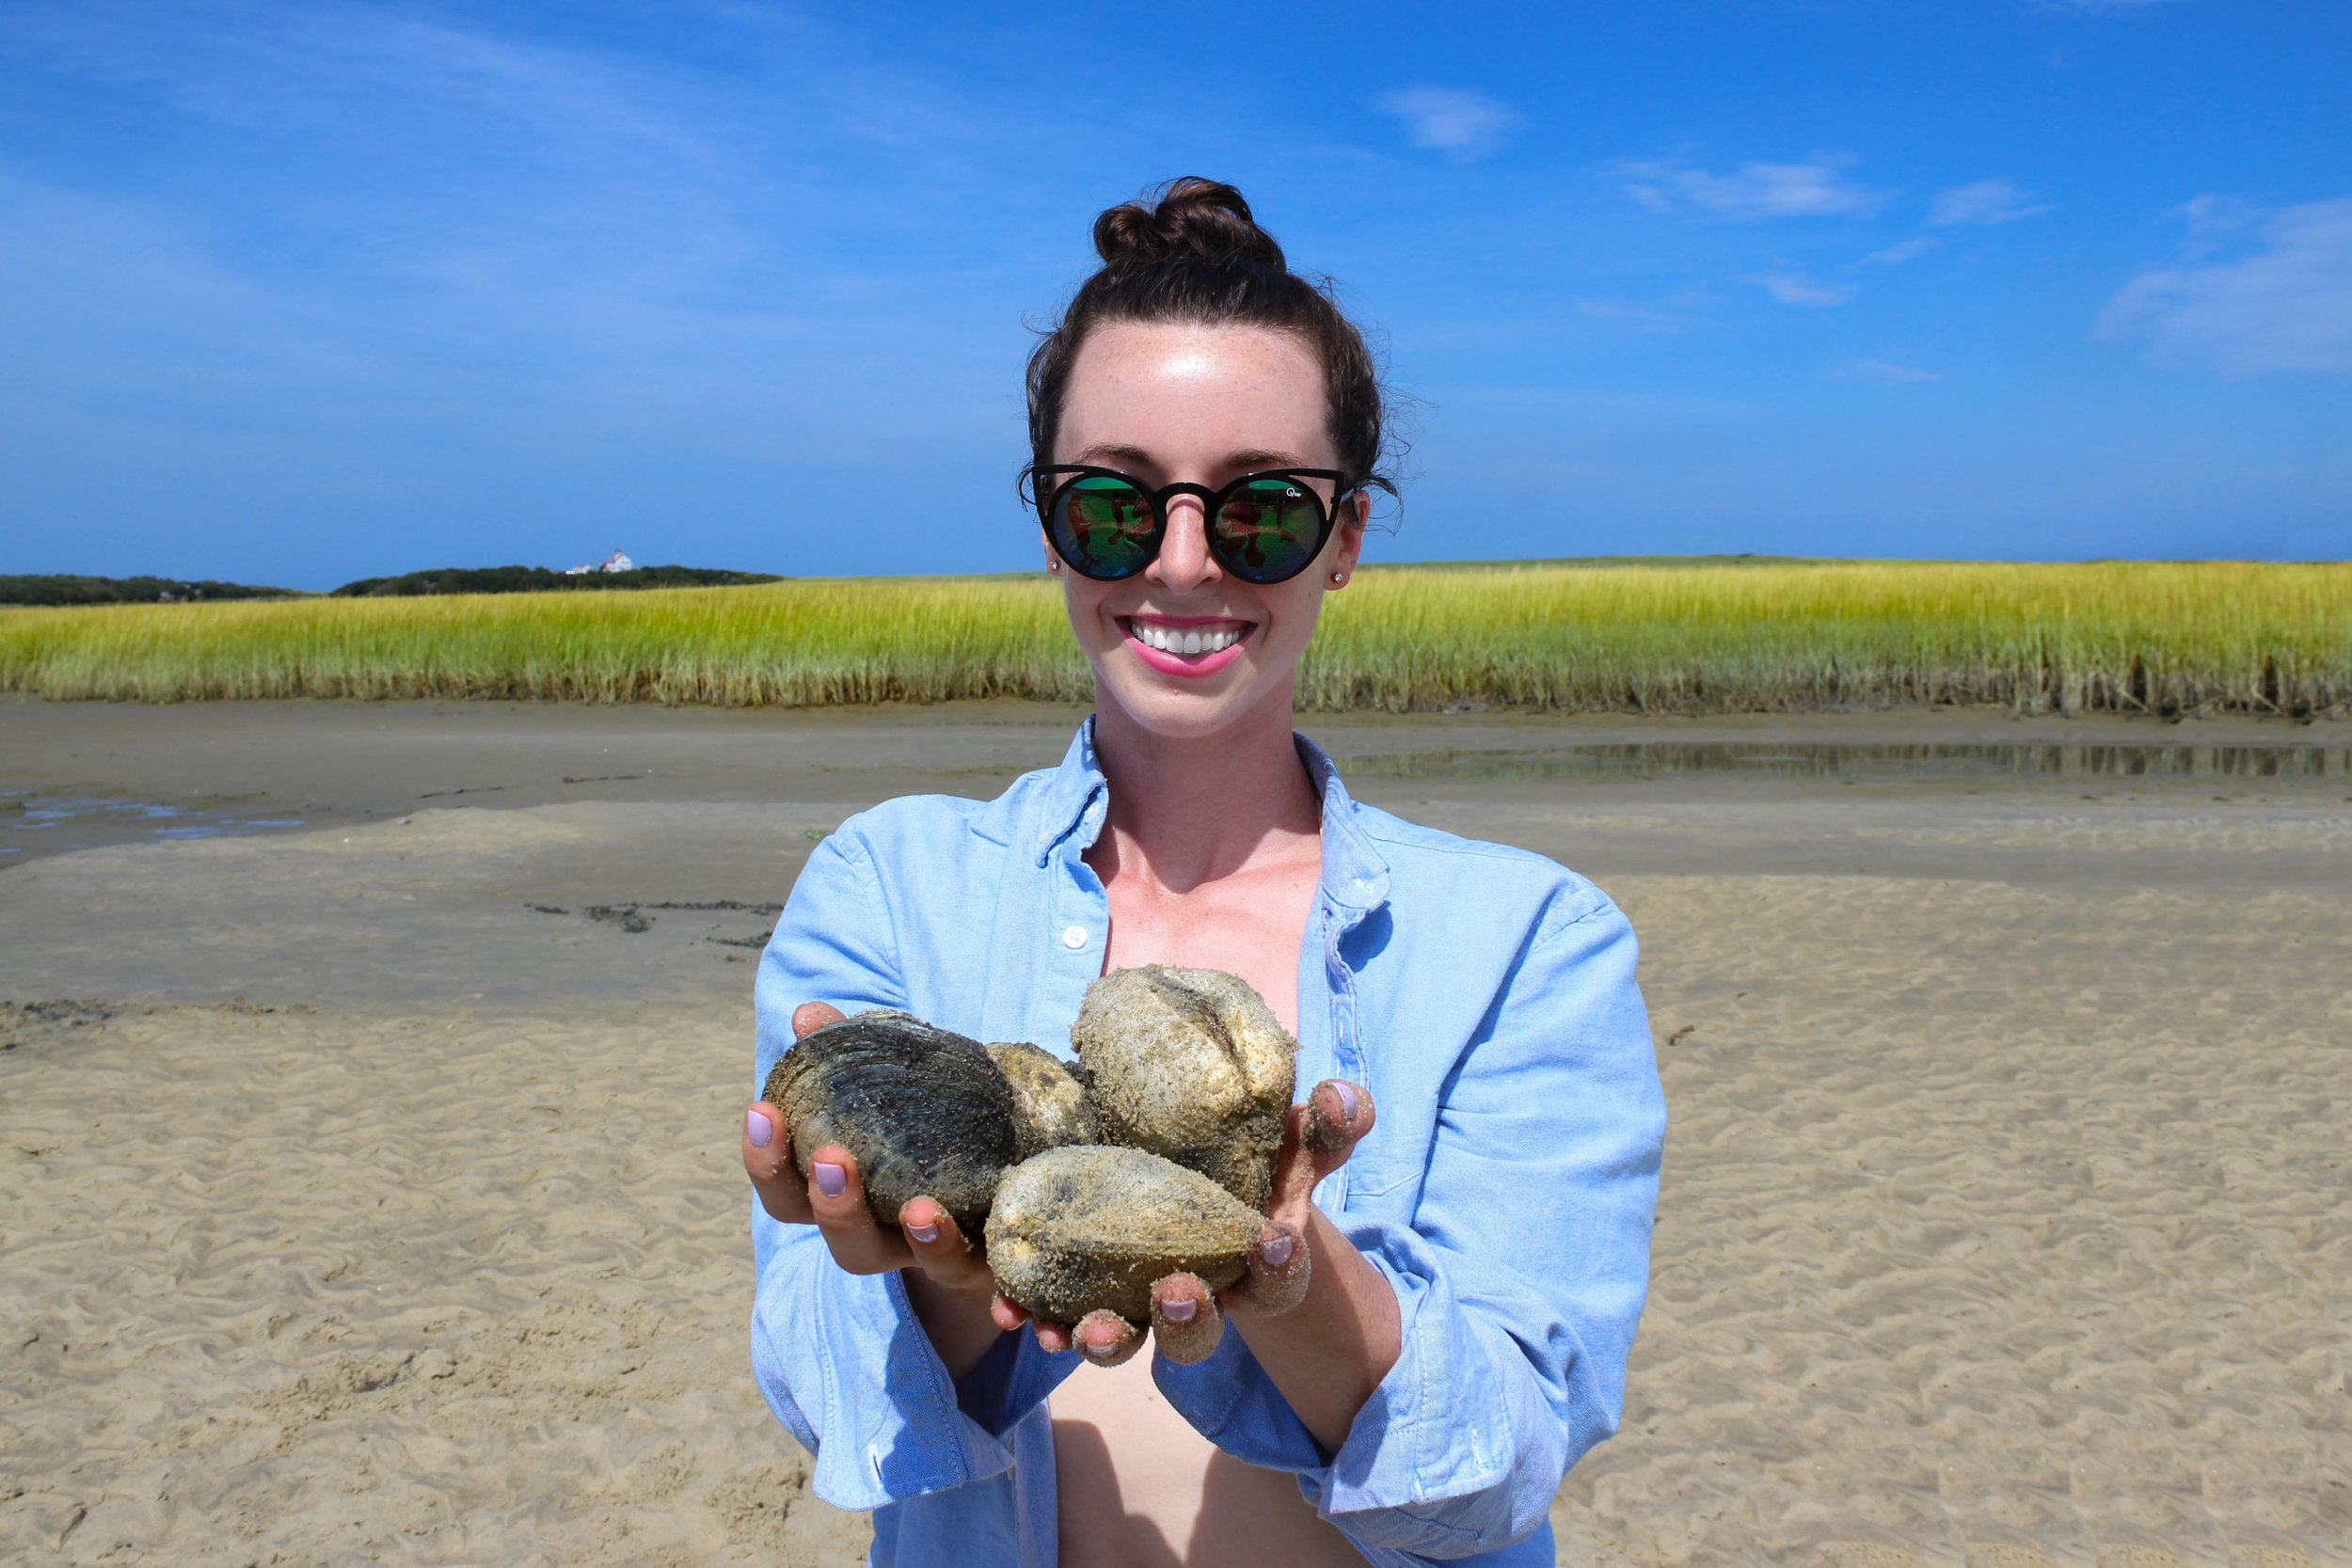 LEARN HOW TO GO CLAMMING ON THIS AMAZING EXPERIENCE   Cape Cod, Massachusetts